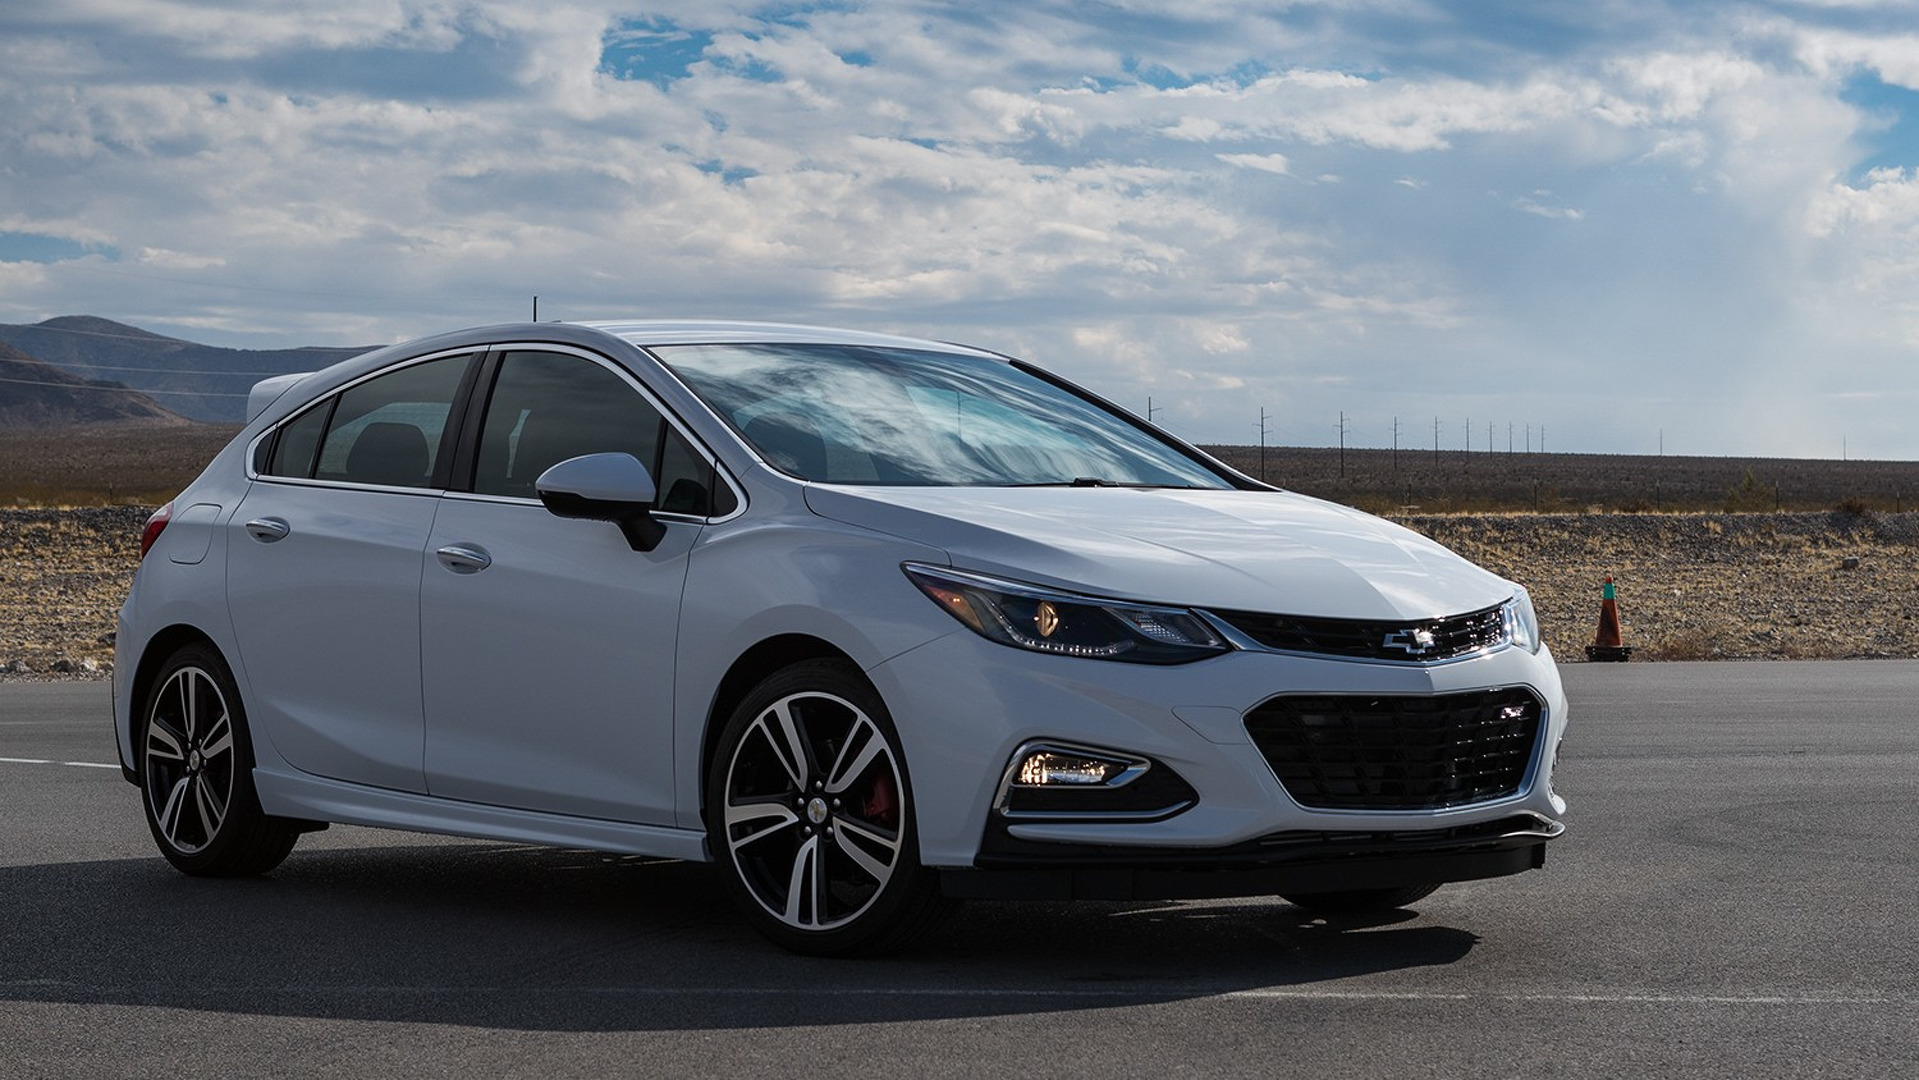 Chevy Showcases New Sporty Parts At Sema 2021 Chevy Cruze Reviews, Accessories, Aftermarket Parts